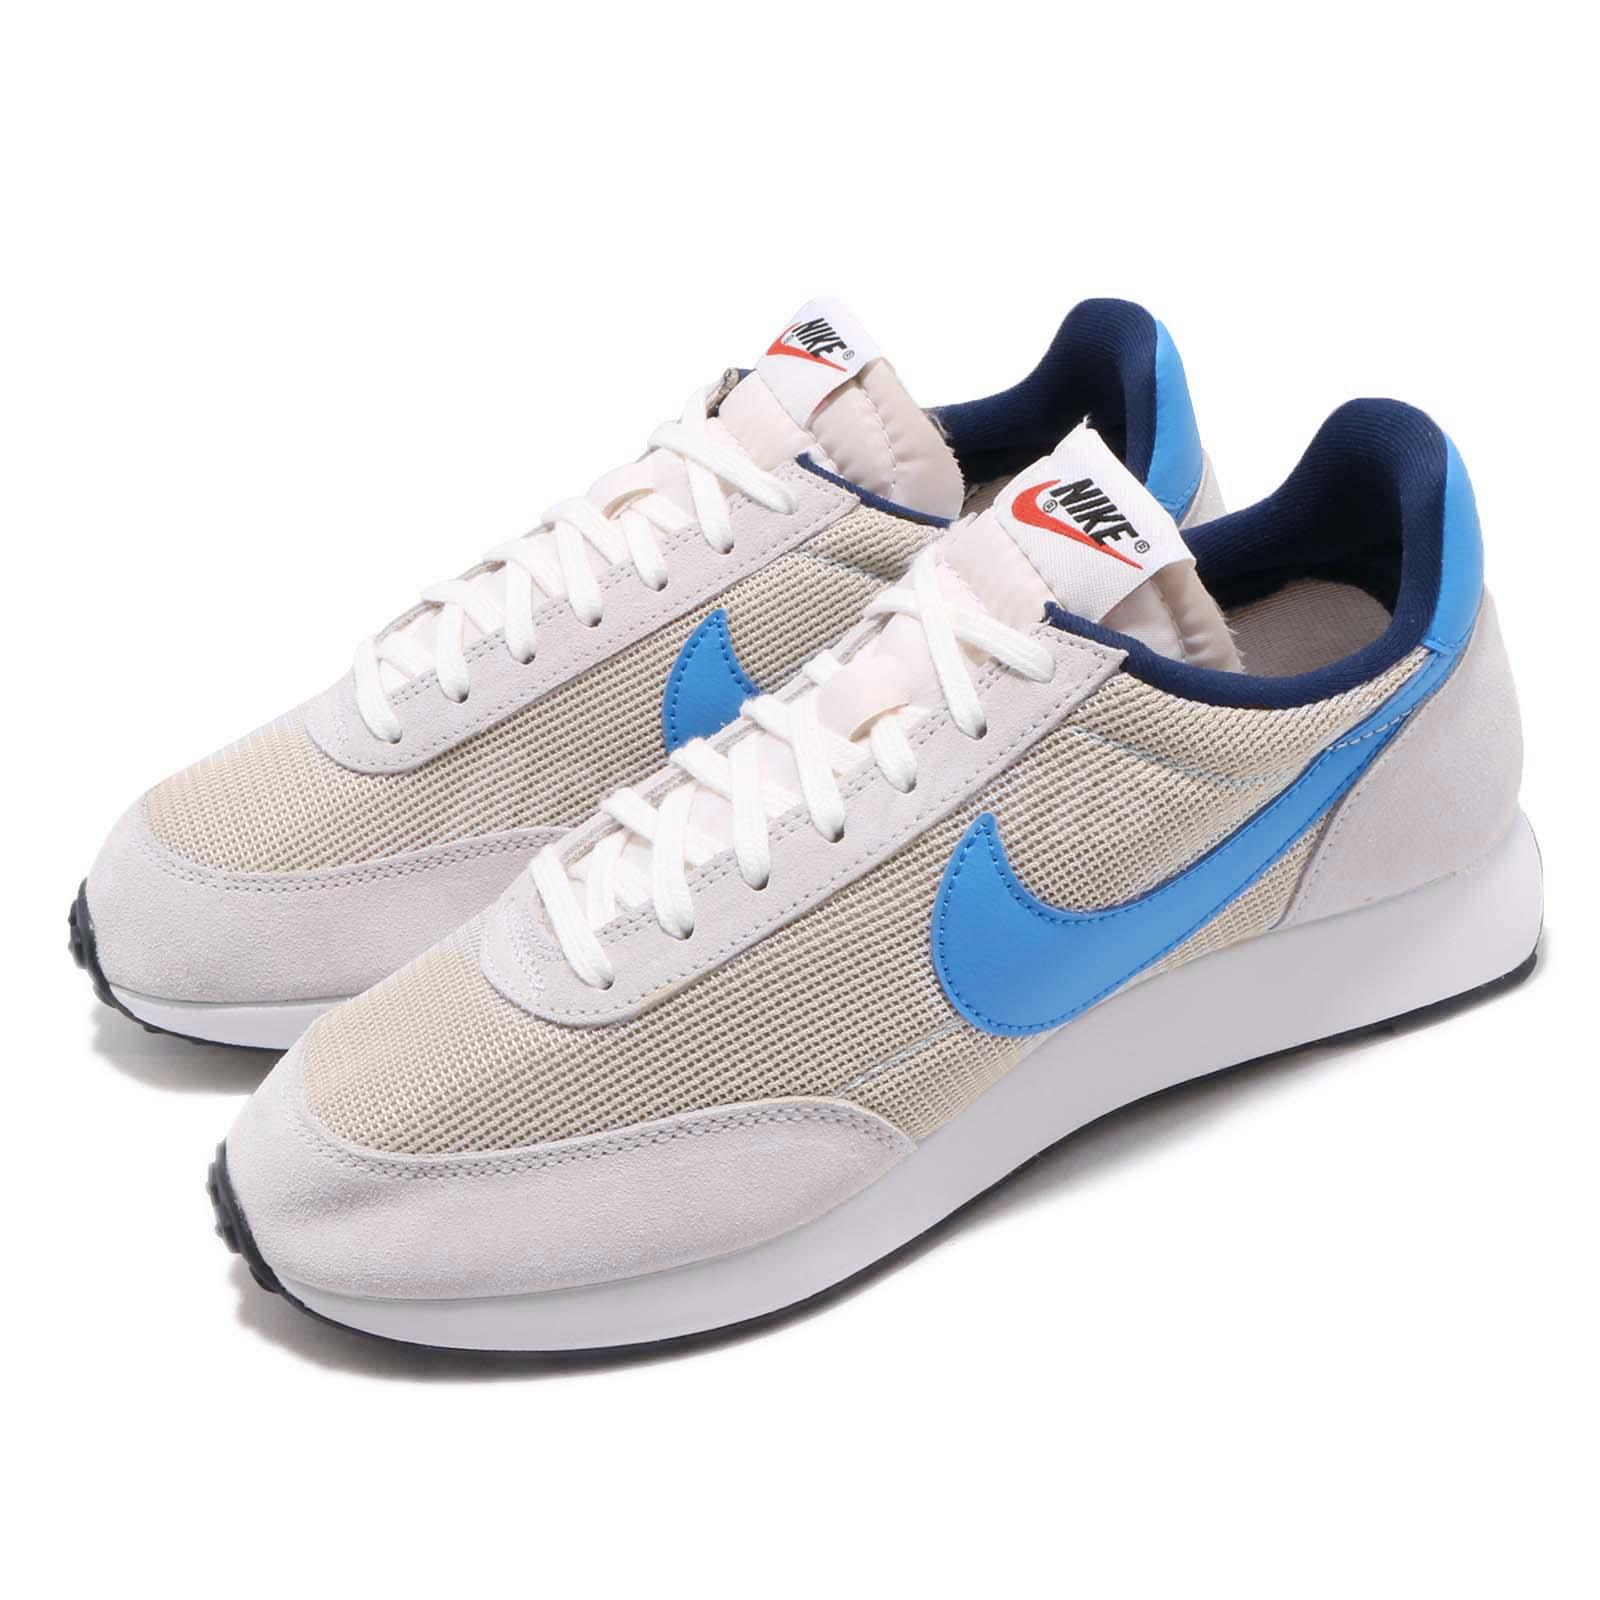 Details about Nike Air Tailwind 79 OG Vast Grey Photo Blue Mens Retro  Running Shoes BQ5878-001 8221fbba5